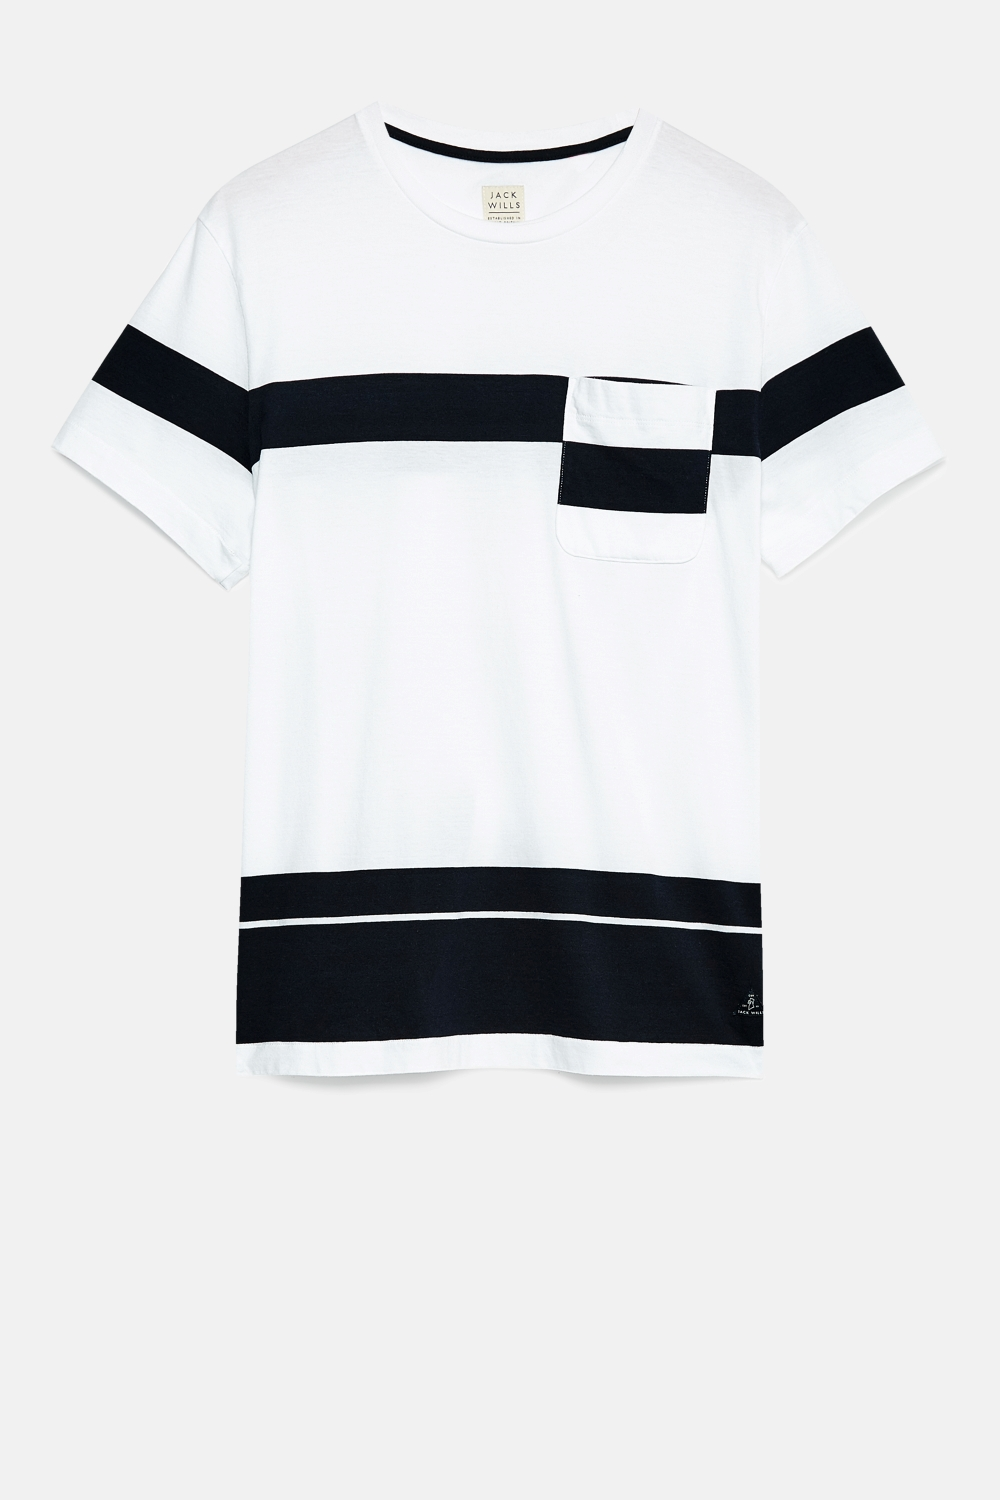 Jack Wills White SOUTHWAY PLACED STRIPE T-SHIRT